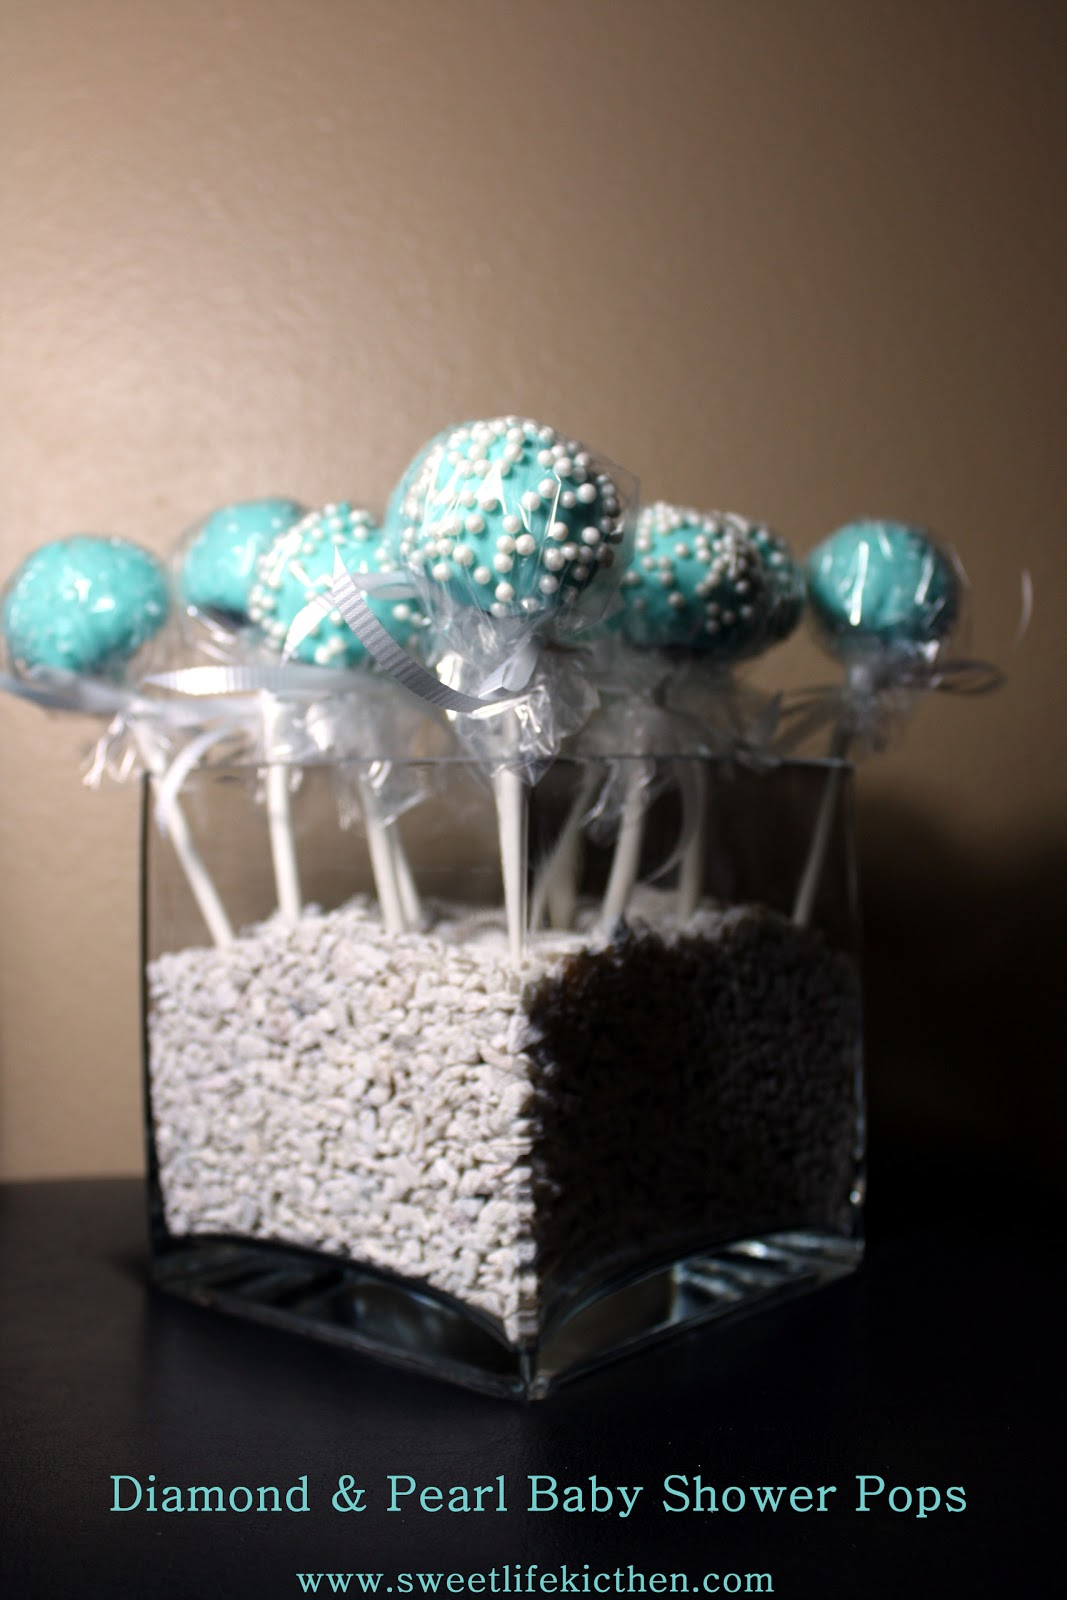 Cake Pop Ideas For Baby Shower : Sweet Life Kitchen: Baby Shower Cake Pops